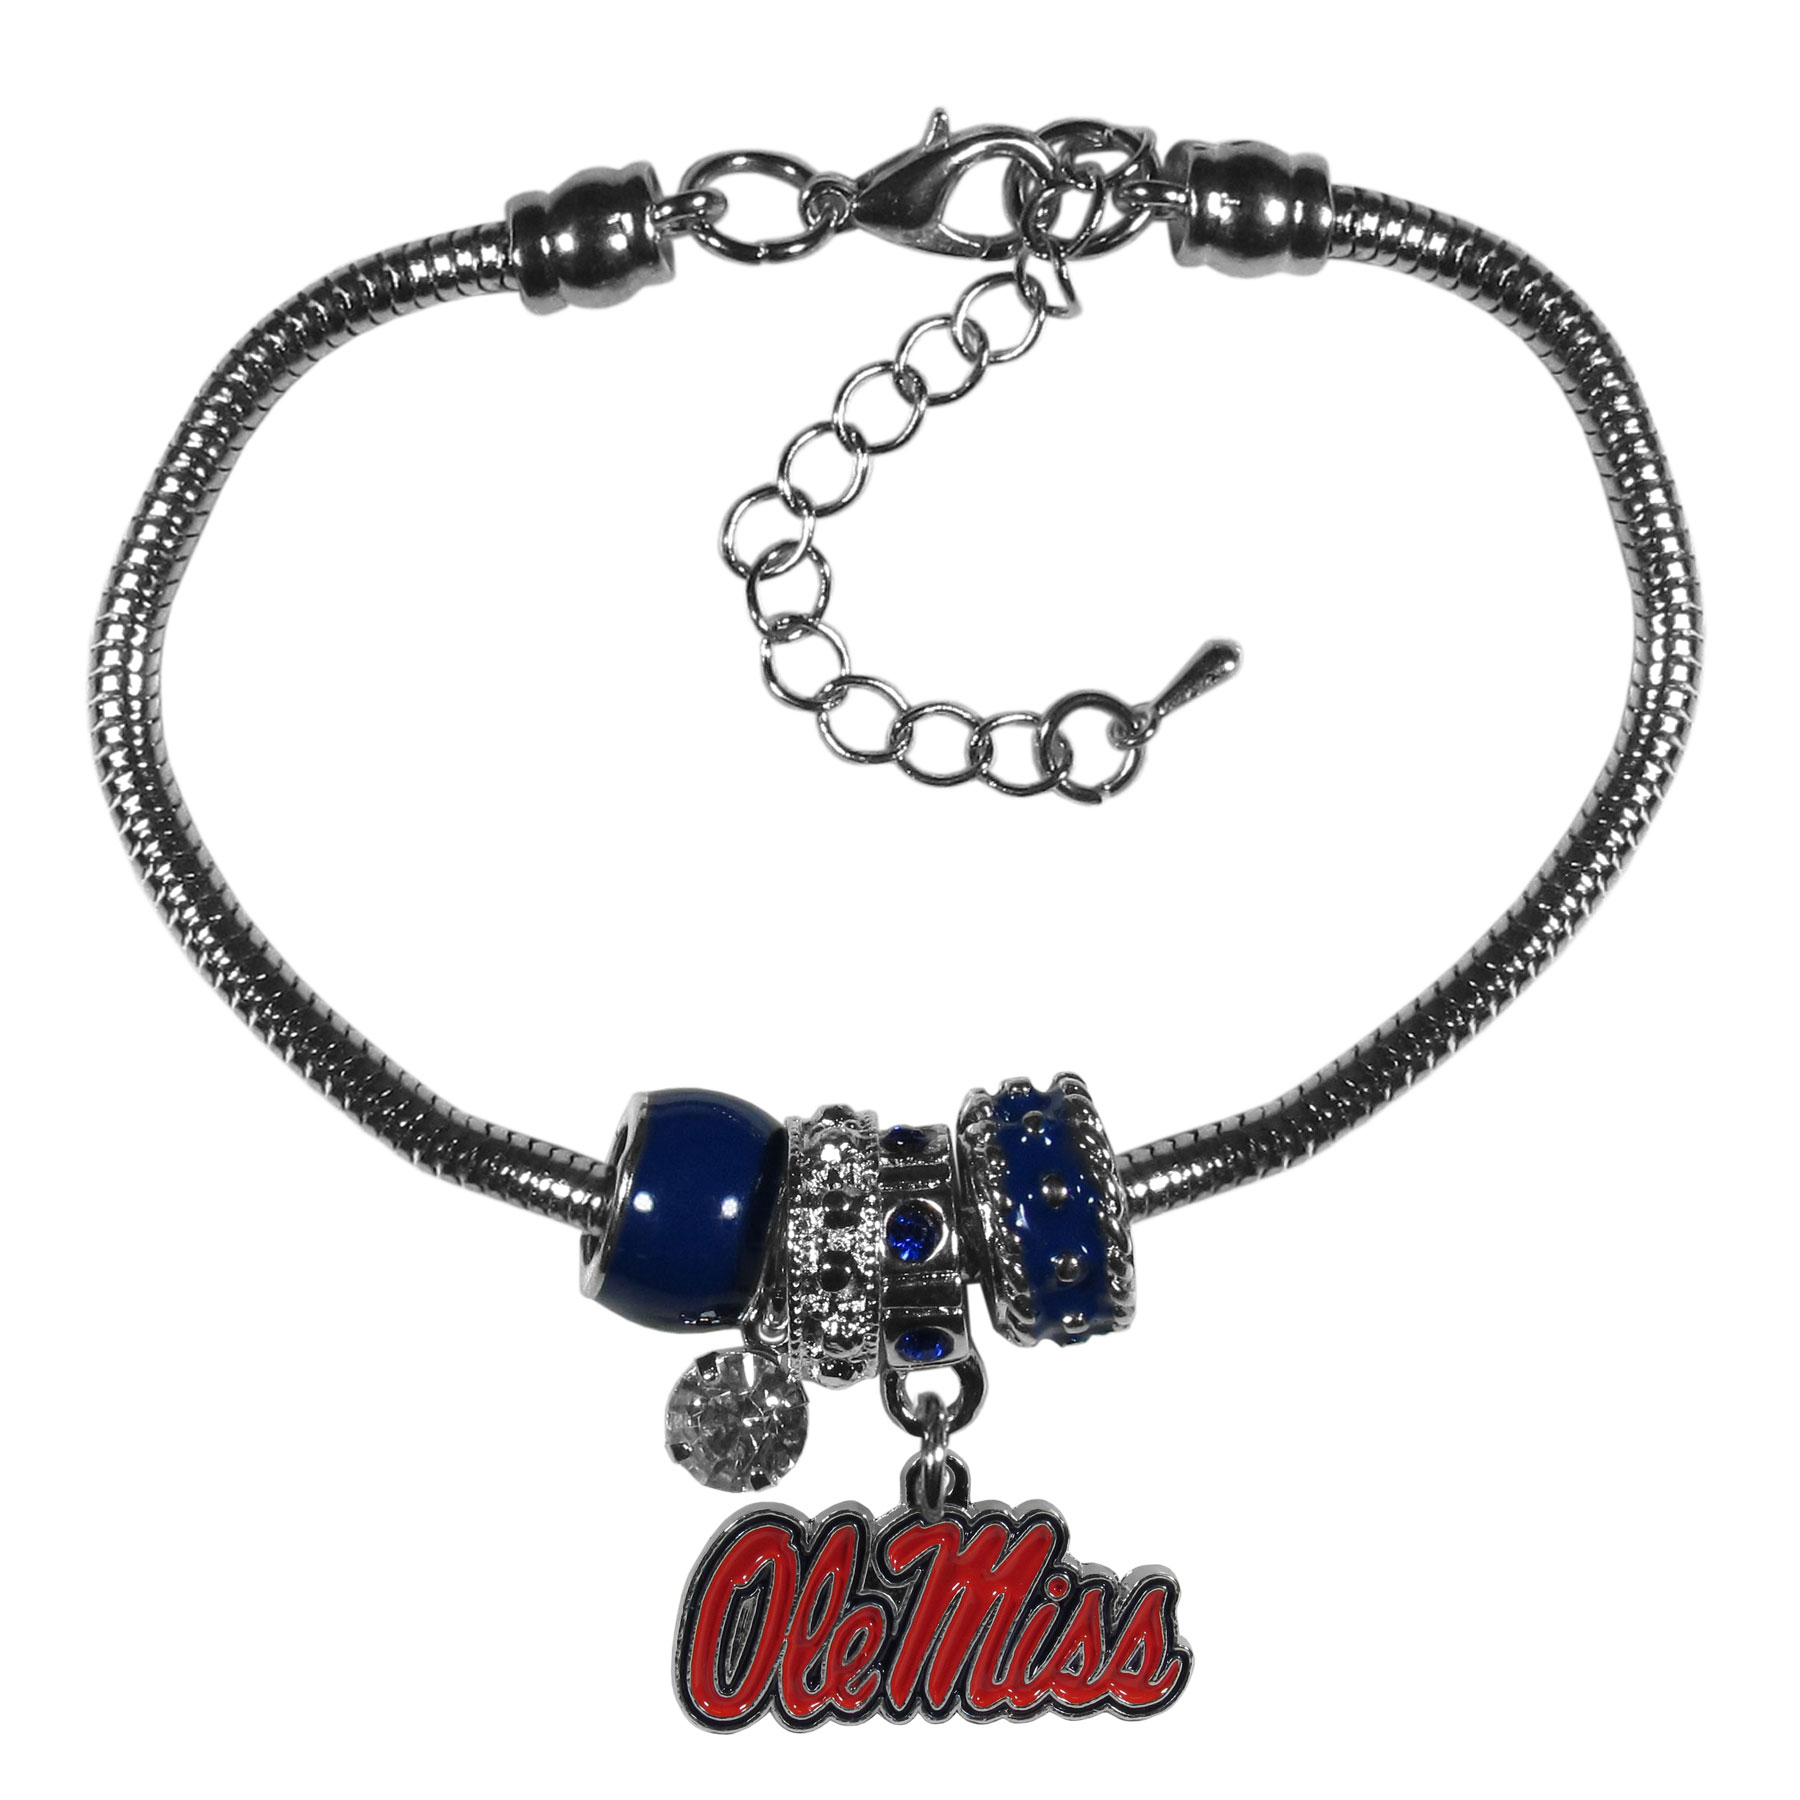 Mississippi Rebels Euro Bead Bracelet - We have combined the wildly popular Euro style beads with your favorite team to create our  Mississippi Rebels bead bracelet. The 7.5 inch snake chain with 2 inch extender features 4 Euro beads with enameled team colors and rhinestone accents with a high polish, nickel free charm and rhinestone charm. Perfect way to show off your team pride.